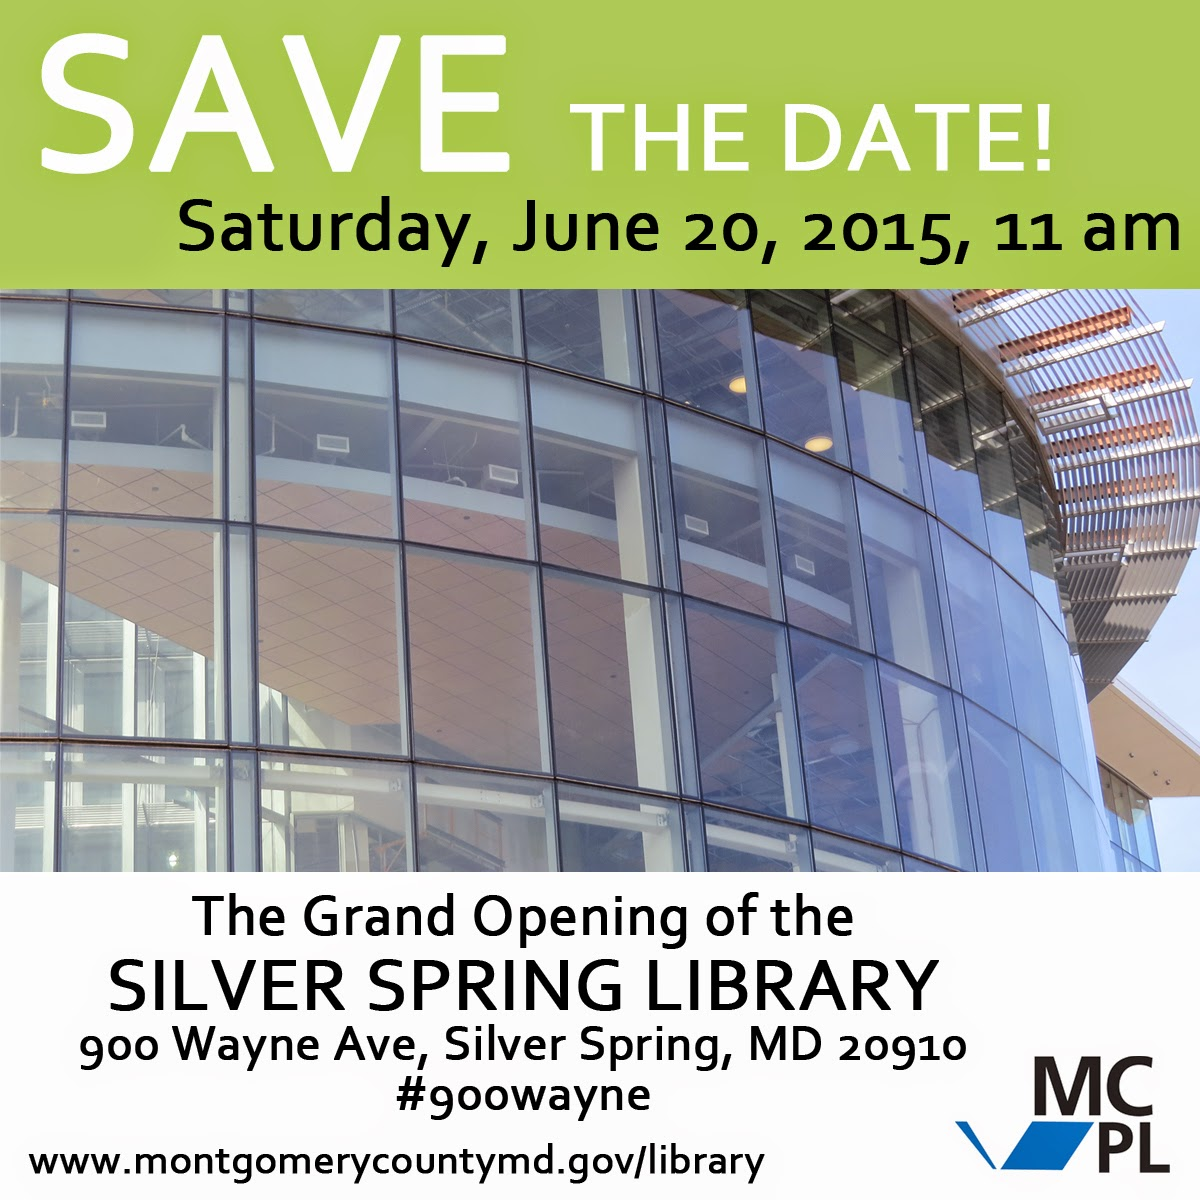 Save the Date! Grand opening June 20, 2015 at 11 am